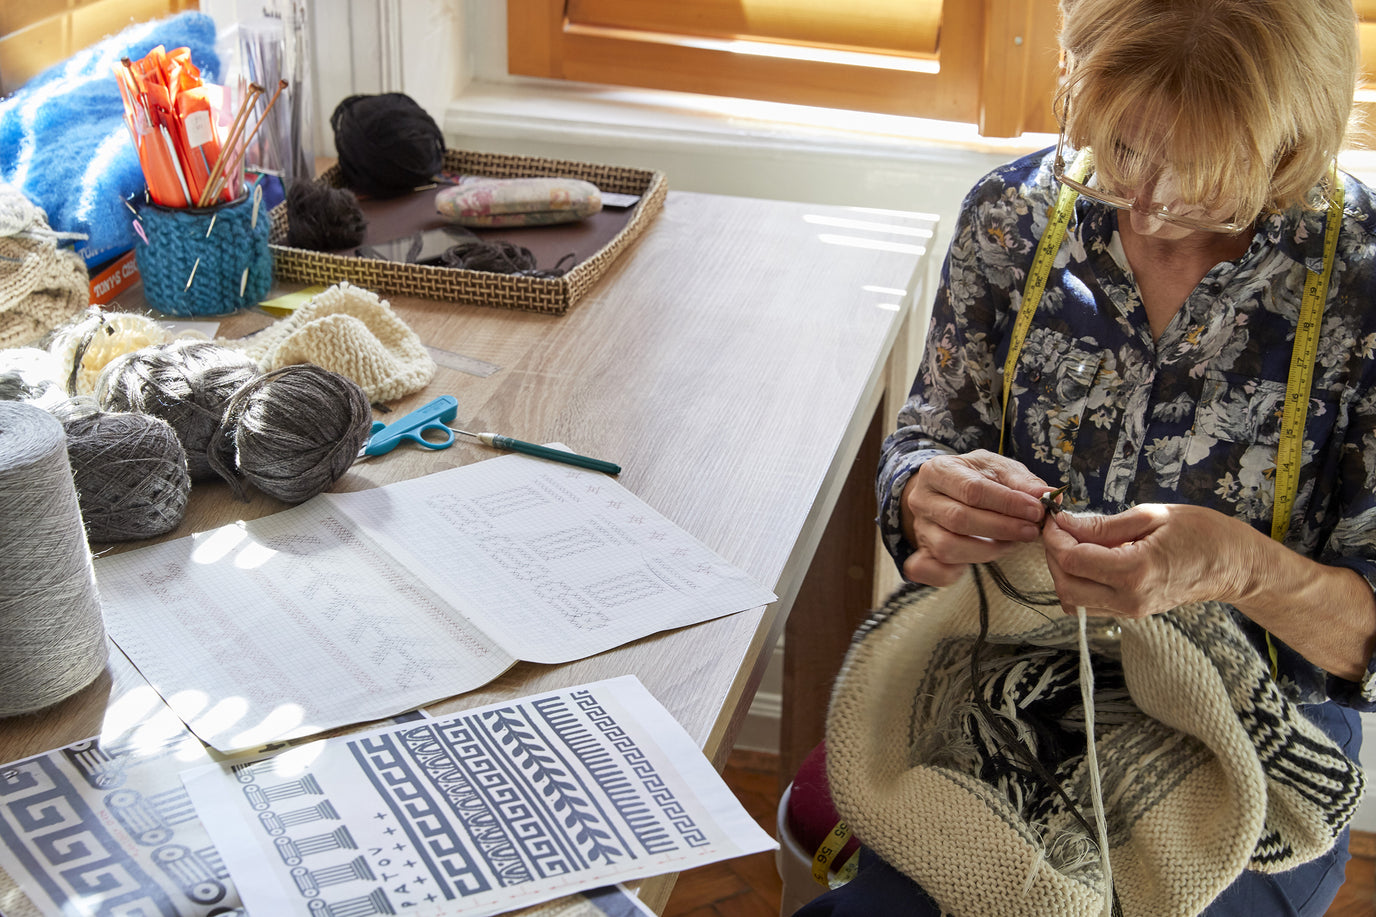 Ethical handknitting